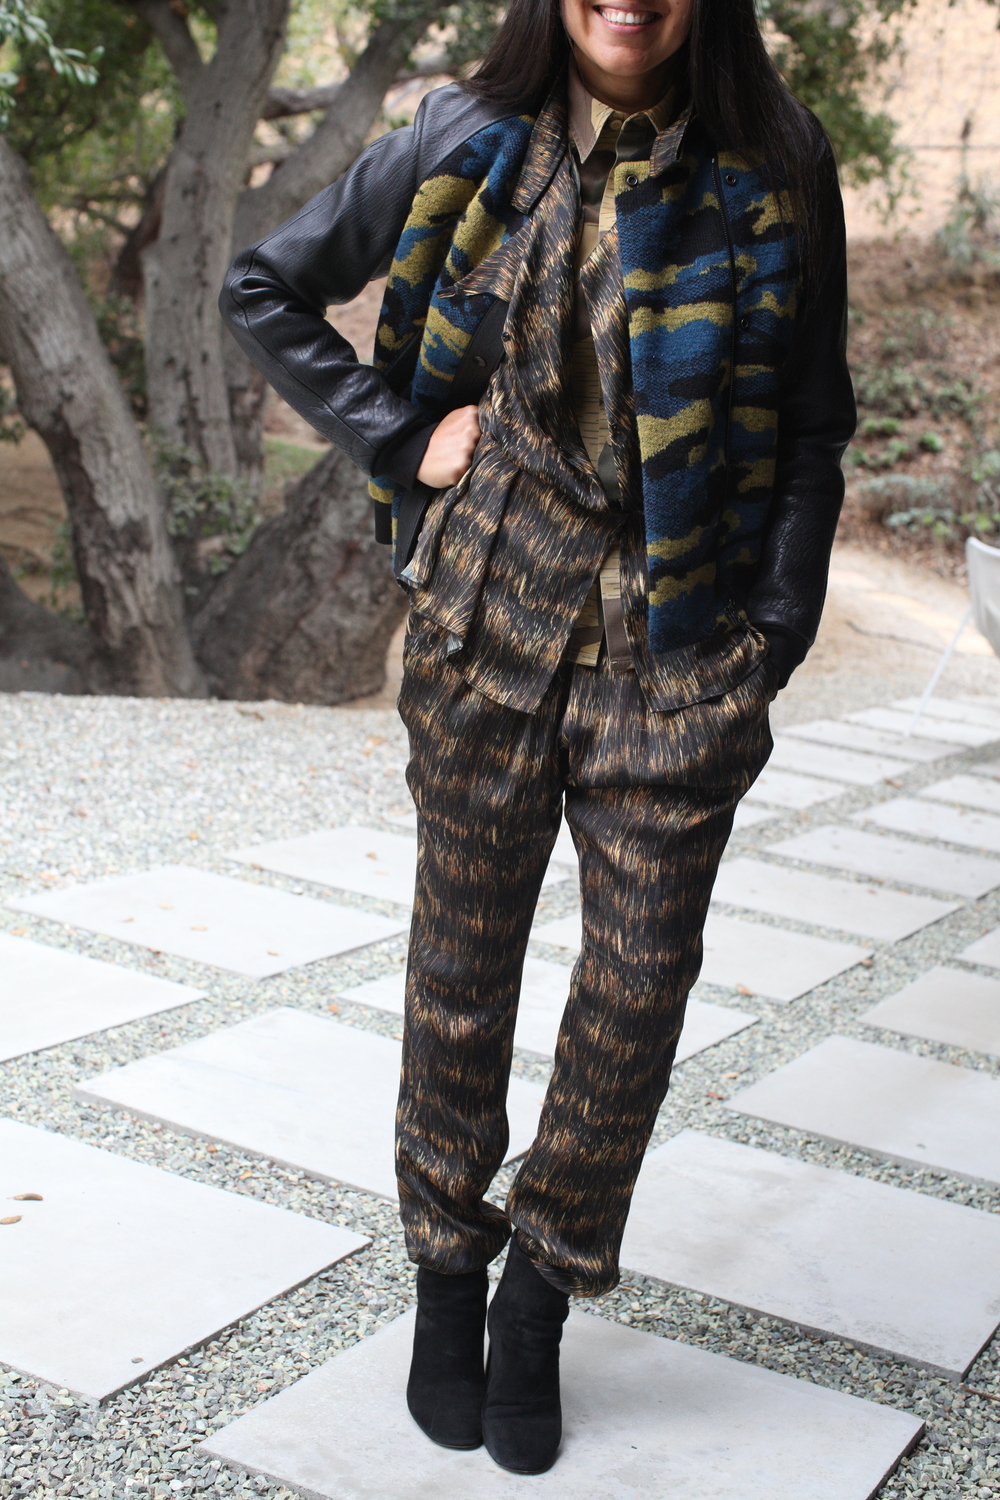 isabel-marant-suit-gryphon-camo-jacket-los-angeles.JPG